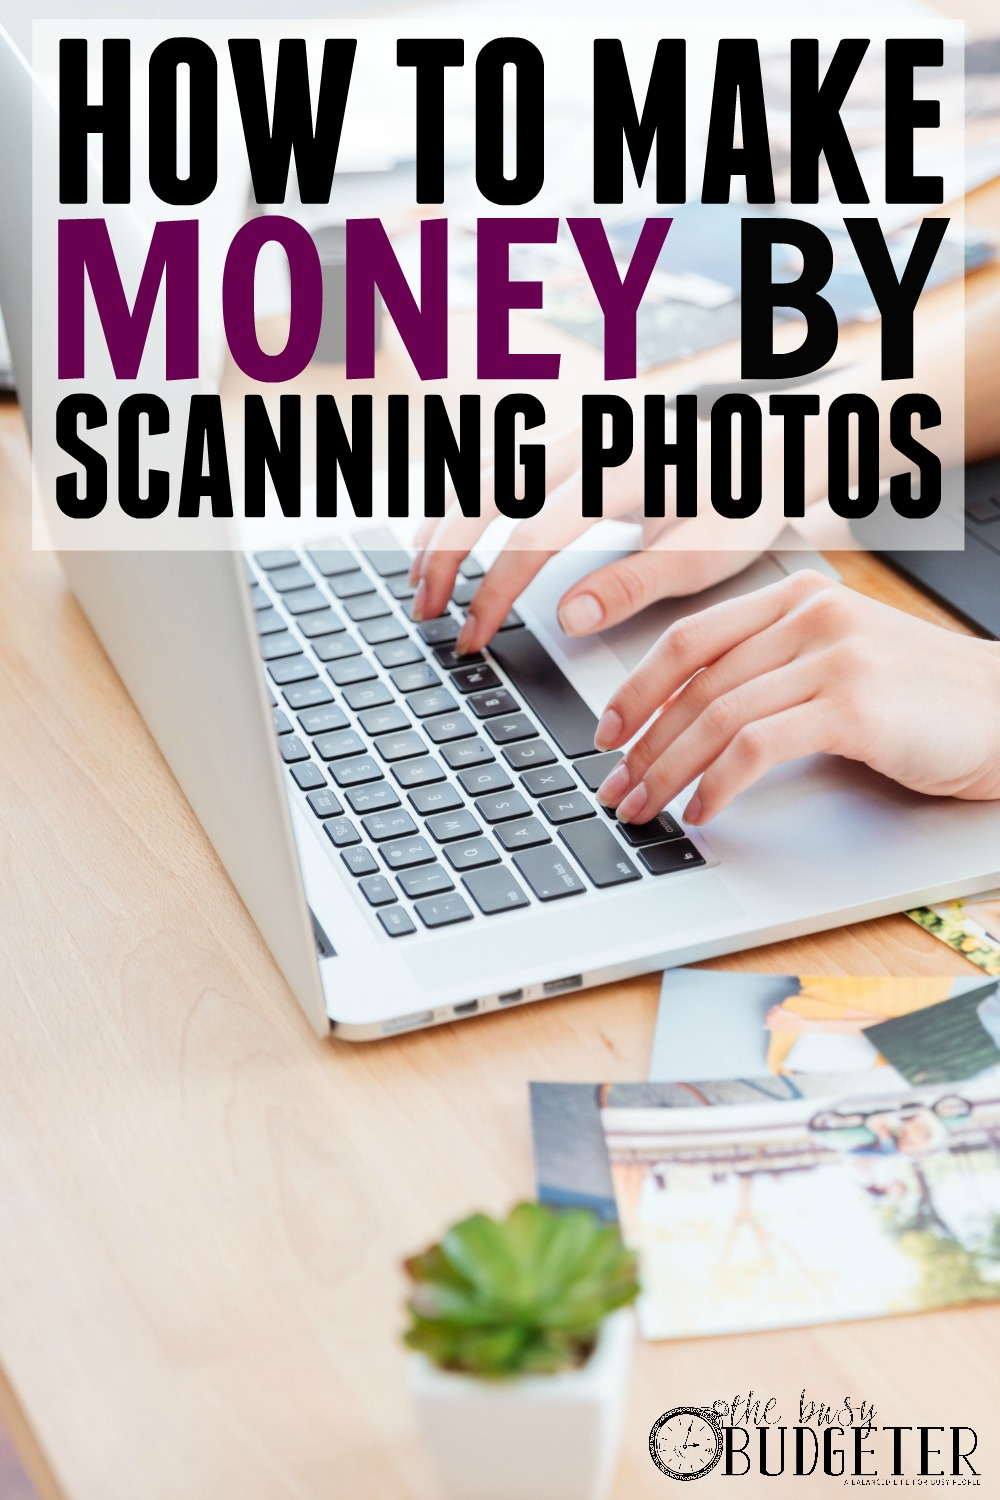 How to make money by scanning photographs. This is so freaking smart! And true! Haha, I read it because I want to hire someone to scan in our family photos, I have boatloads of them and have no idea what to do with them! I would totally pay someone to do this for me! And what a great way to make some extra money as a stay at home mom! Easy ways to make money from home always get pinned over here. ?